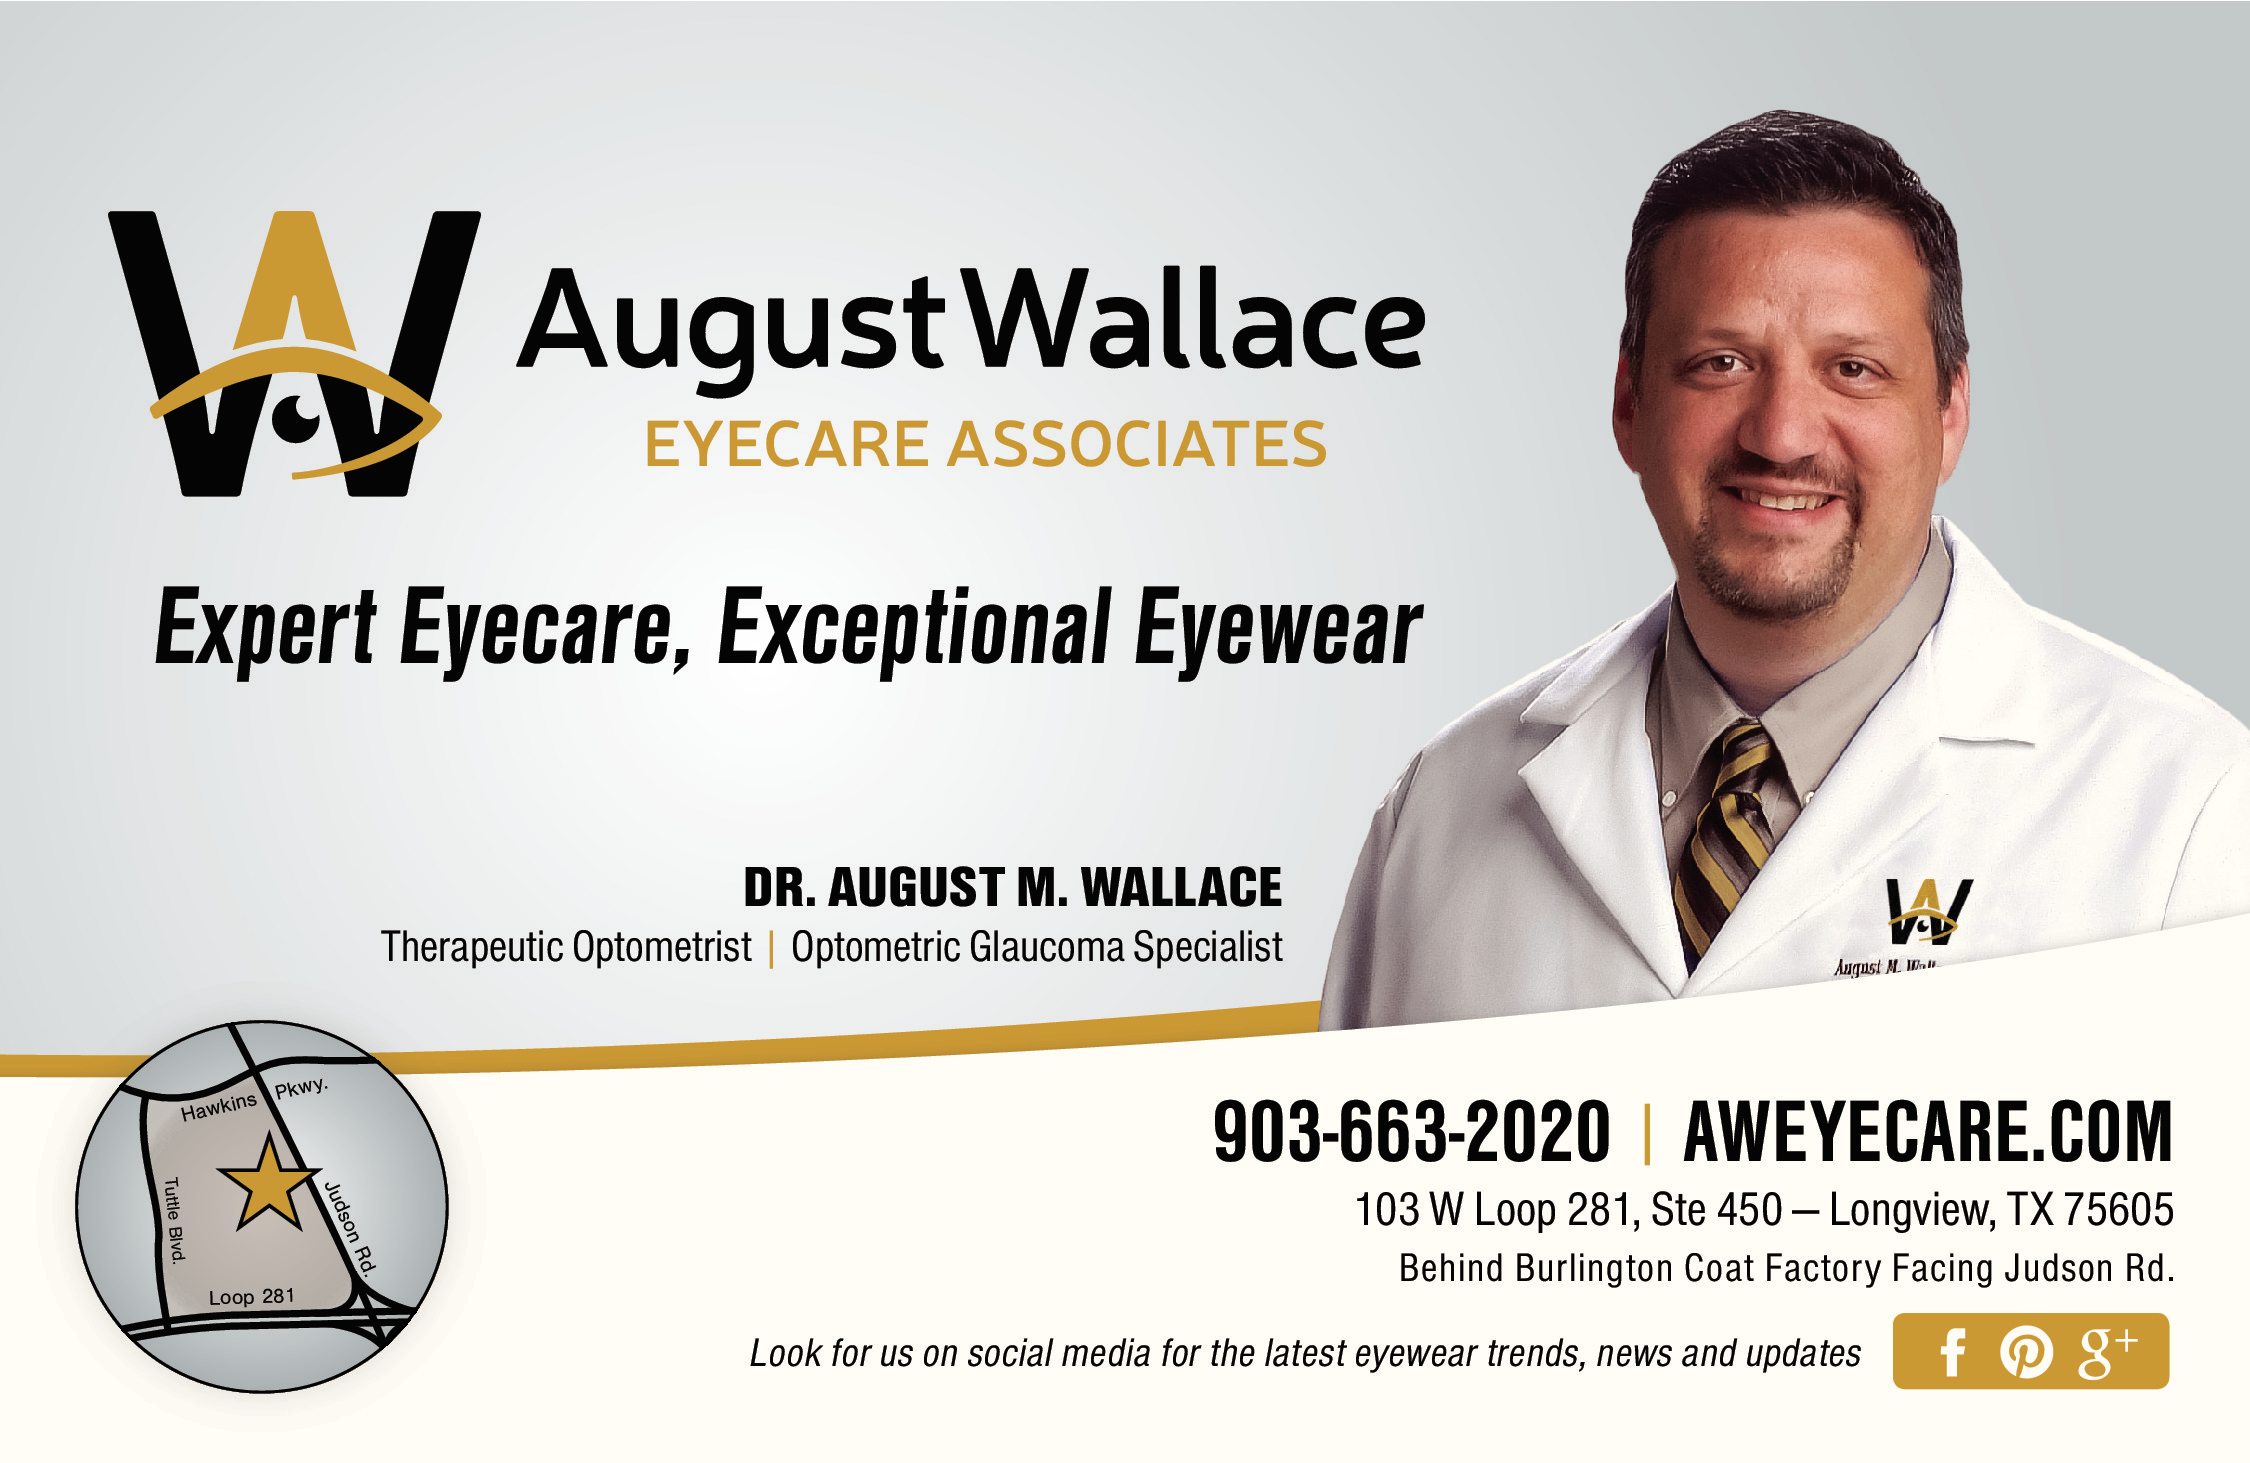 August Wallace Eyecare Associates image 0